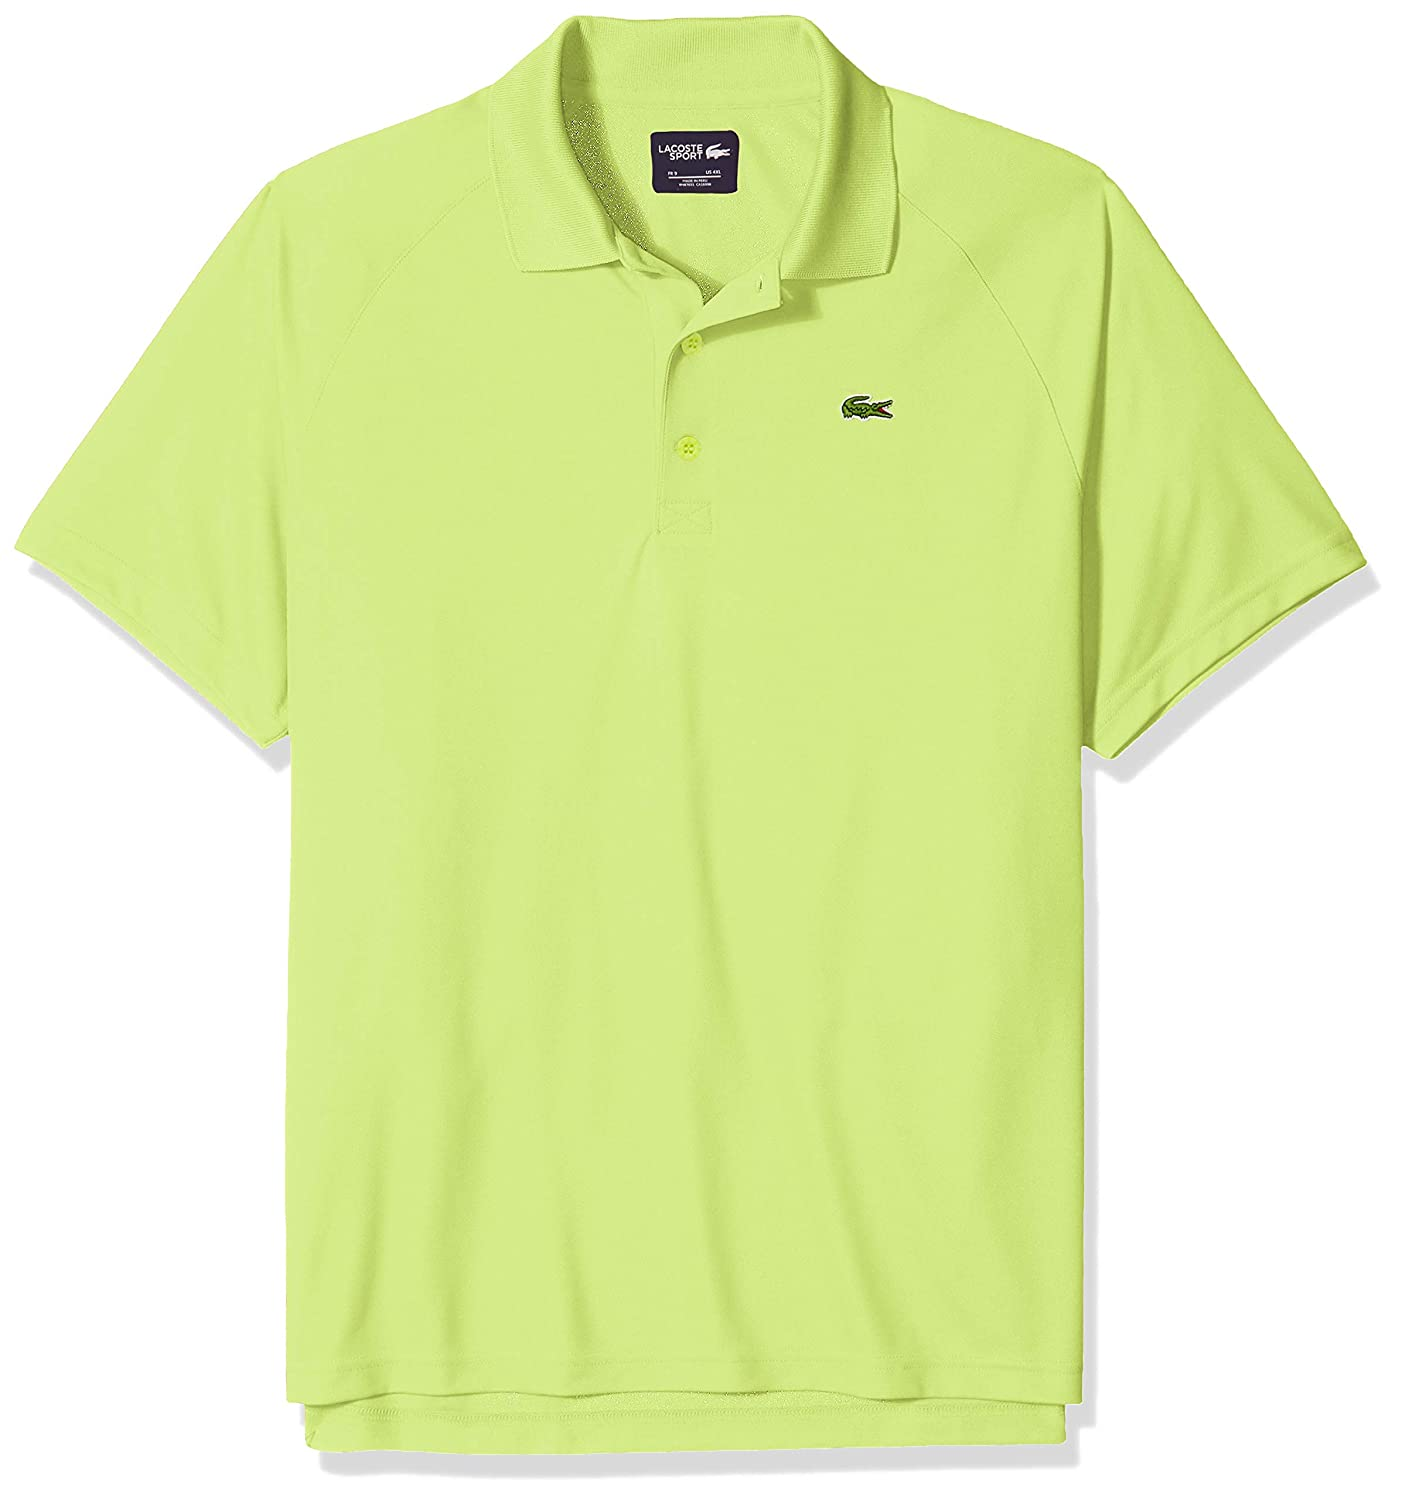 Lacoste Hombres DH9631-51 Manga Corta Camisa Polo - Verde - Large ...